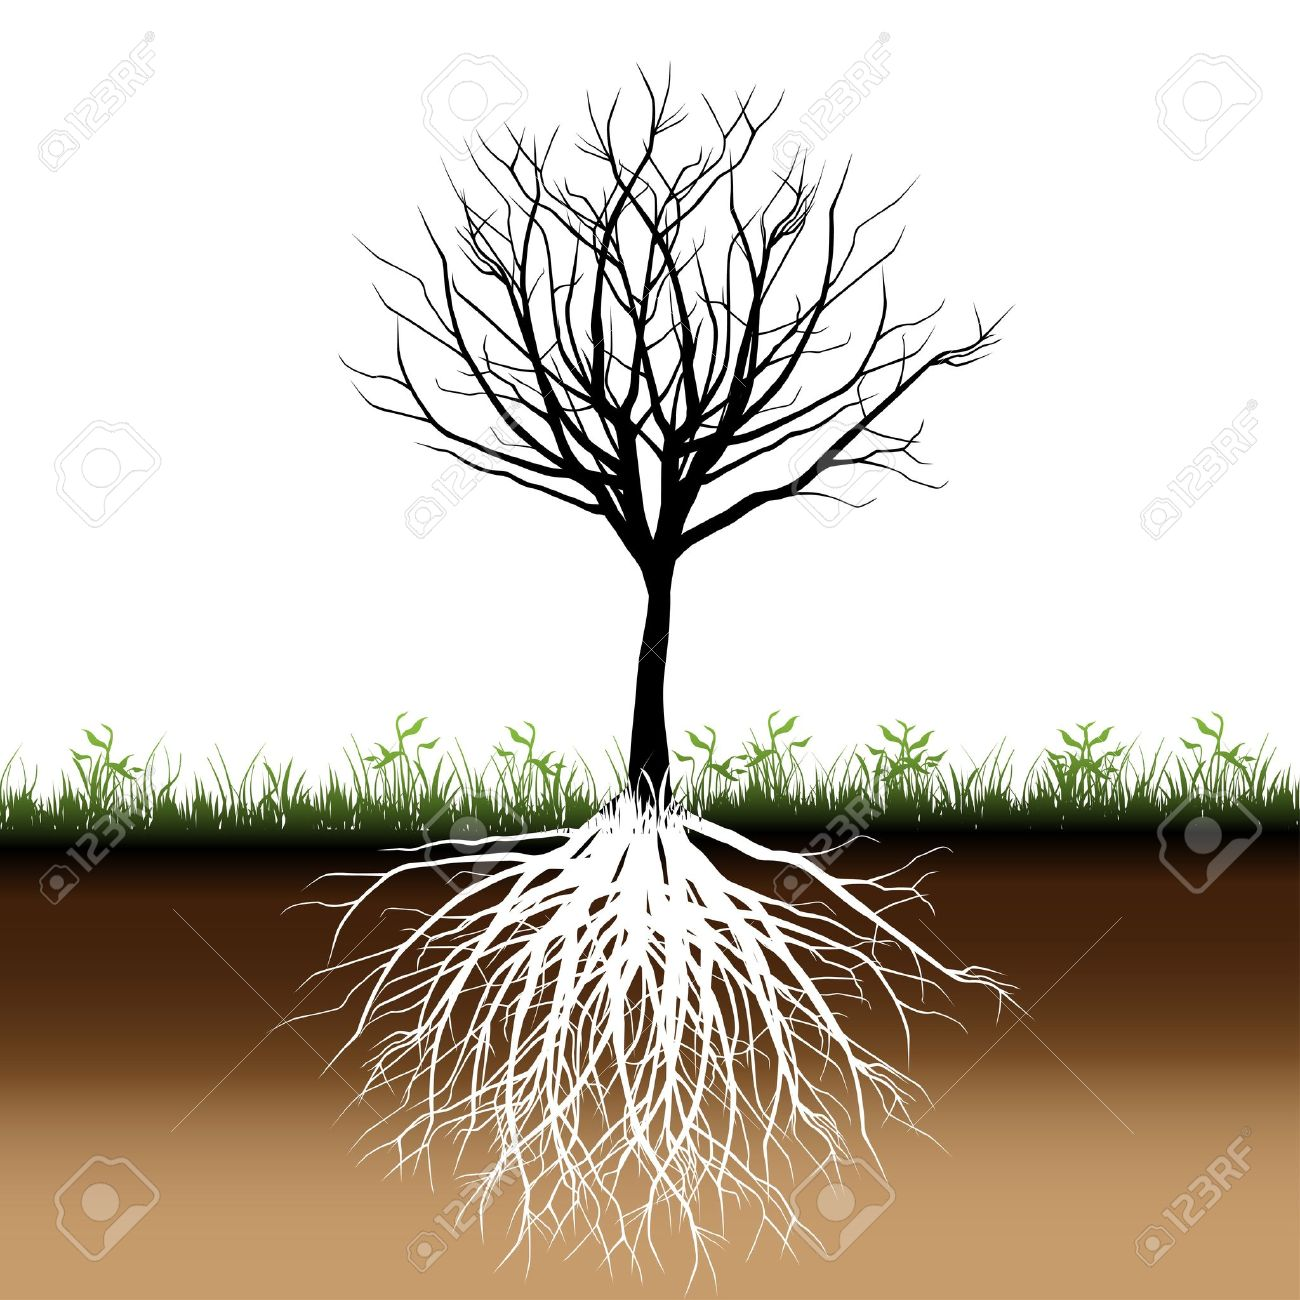 Tree roots silhouette Stock Vector - 13087756